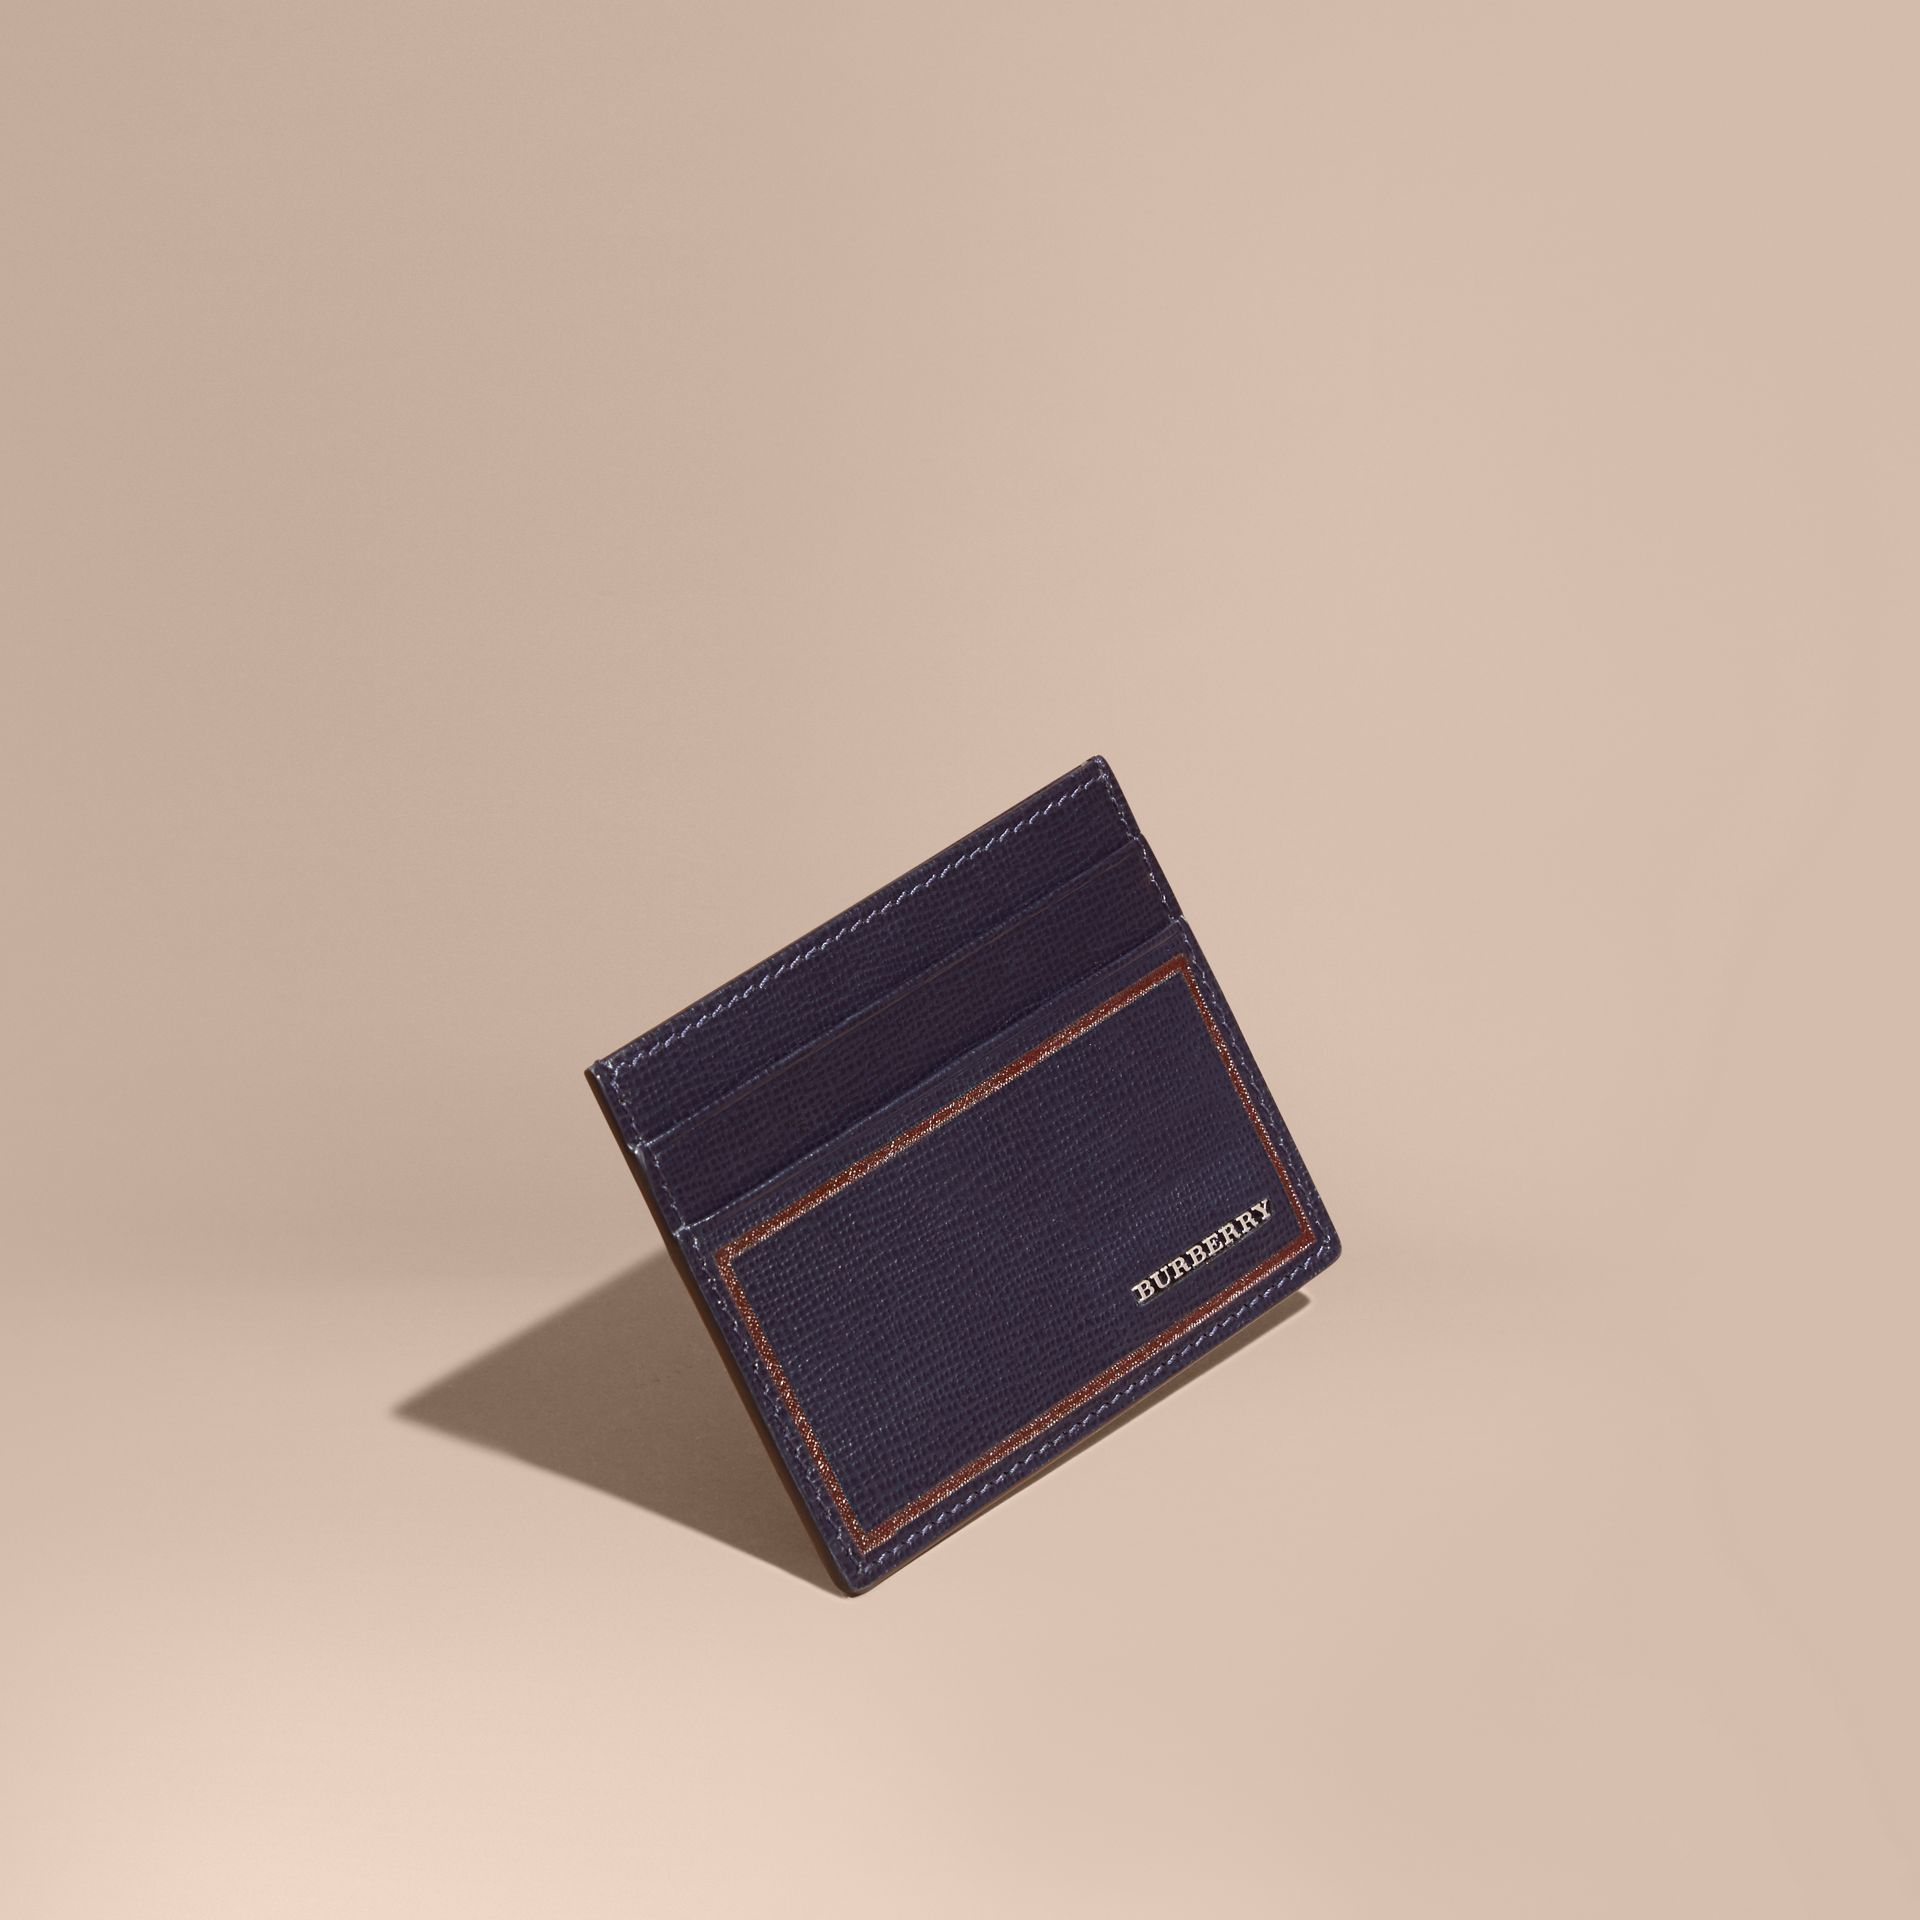 Border Detail London Leather Card Case in Dark Navy - gallery image 1